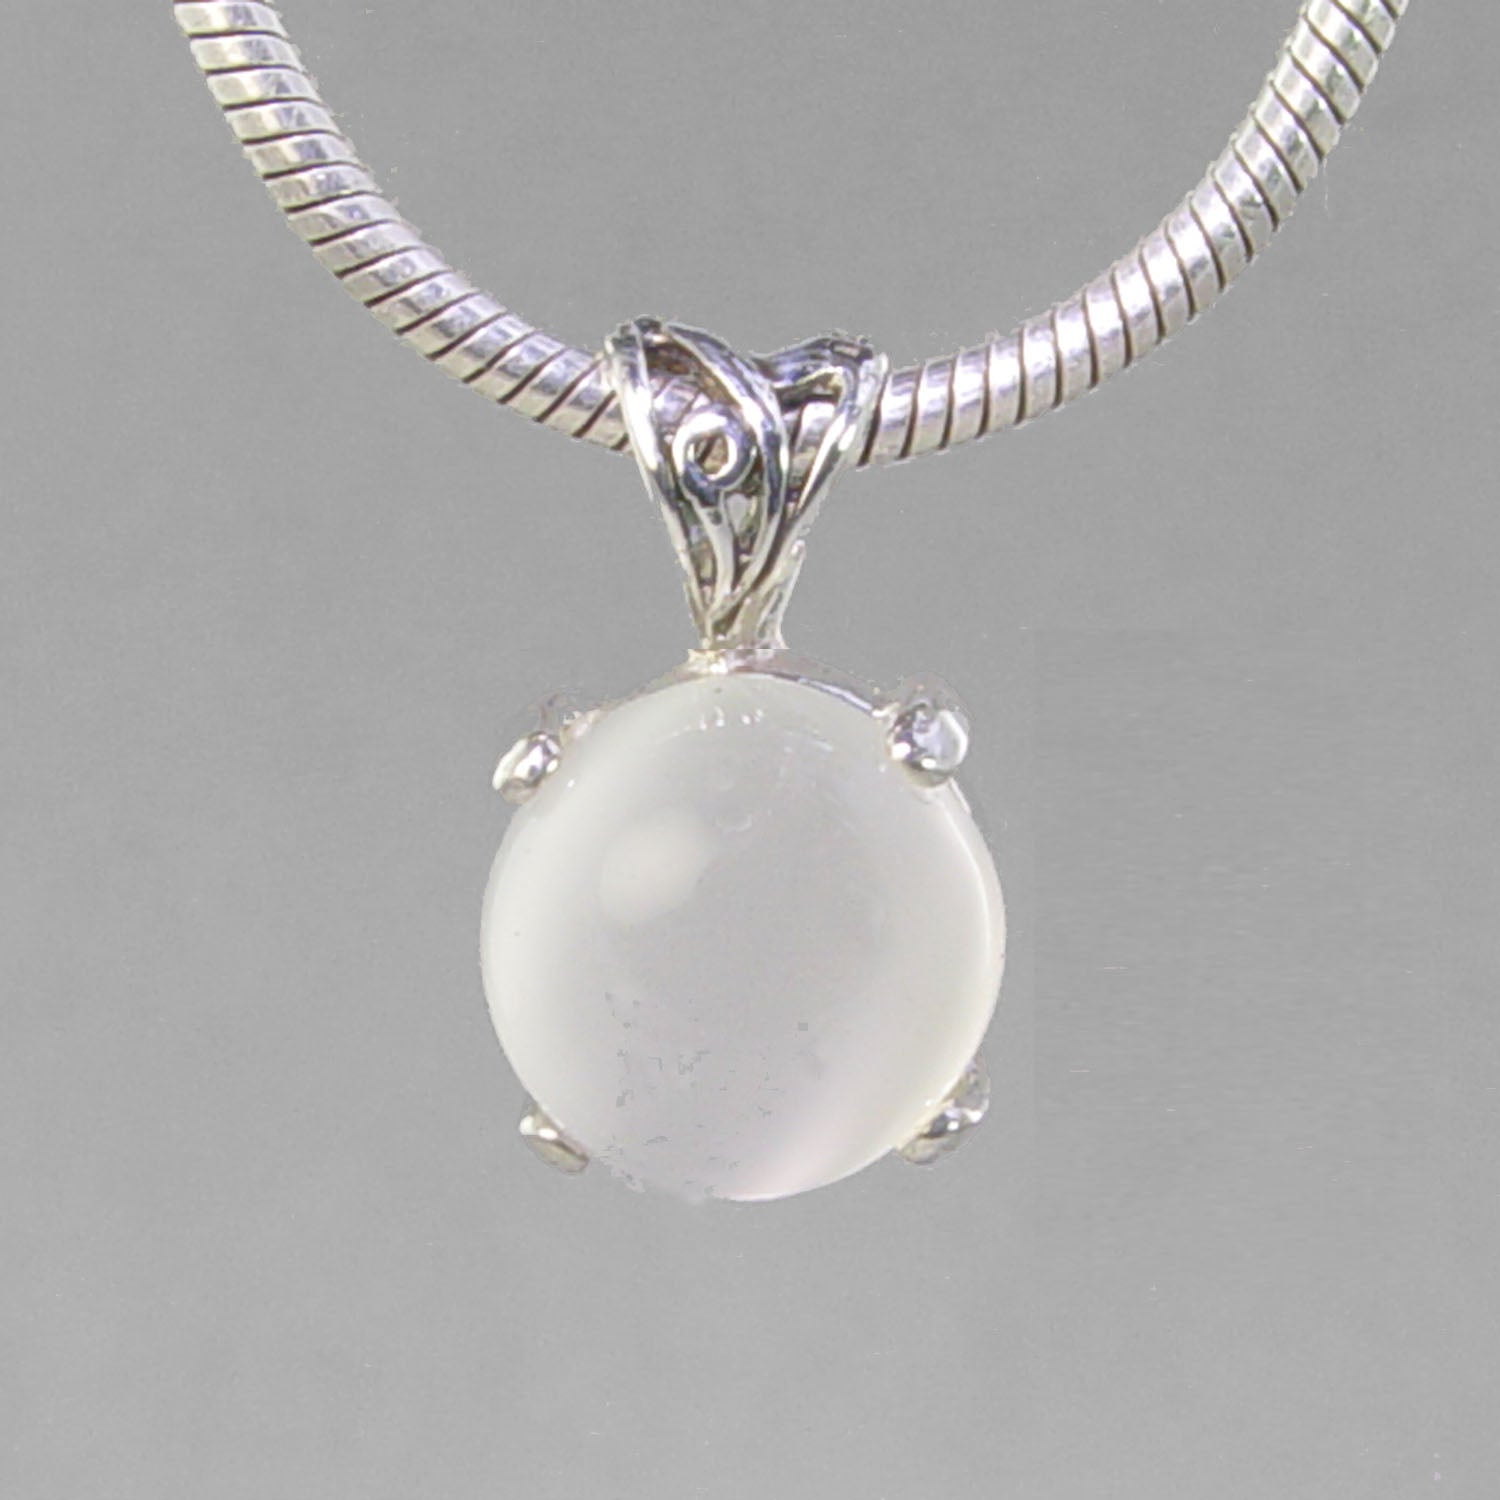 Moonstone 4.7 ct Round Cab Sterling Silver Pendant